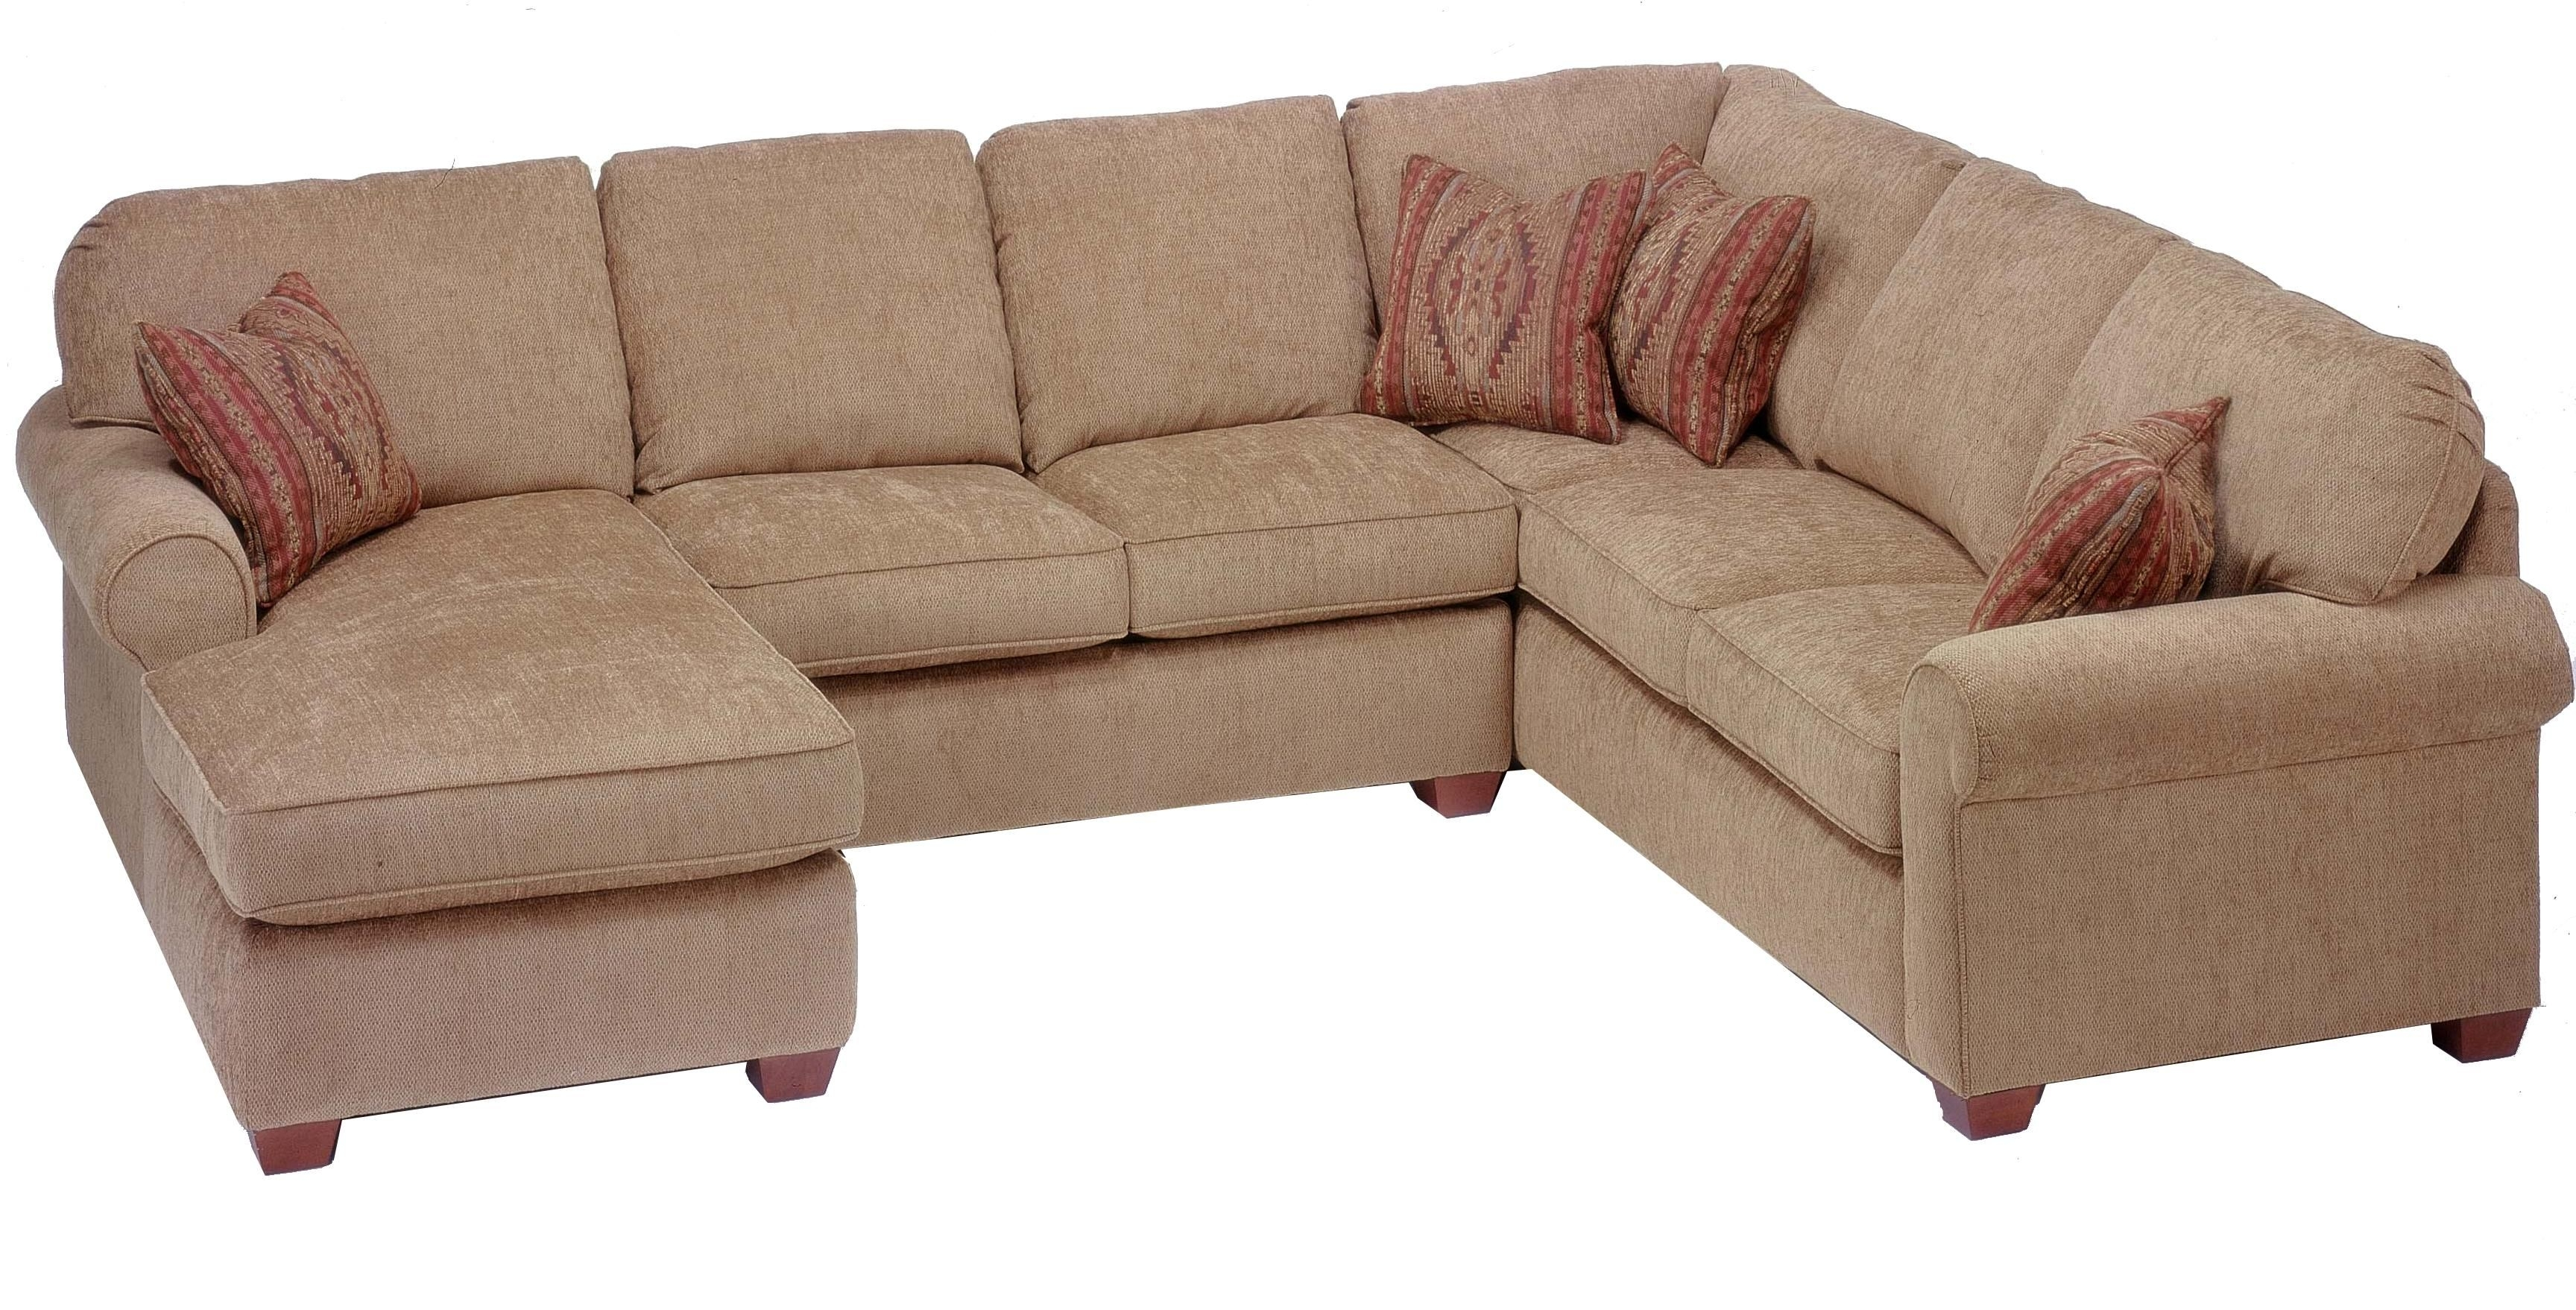 Thornton 3 Piece Sectionalflexsteel | My Style | Pinterest Pertaining To Blaine 4 Piece Sectionals (Image 25 of 25)